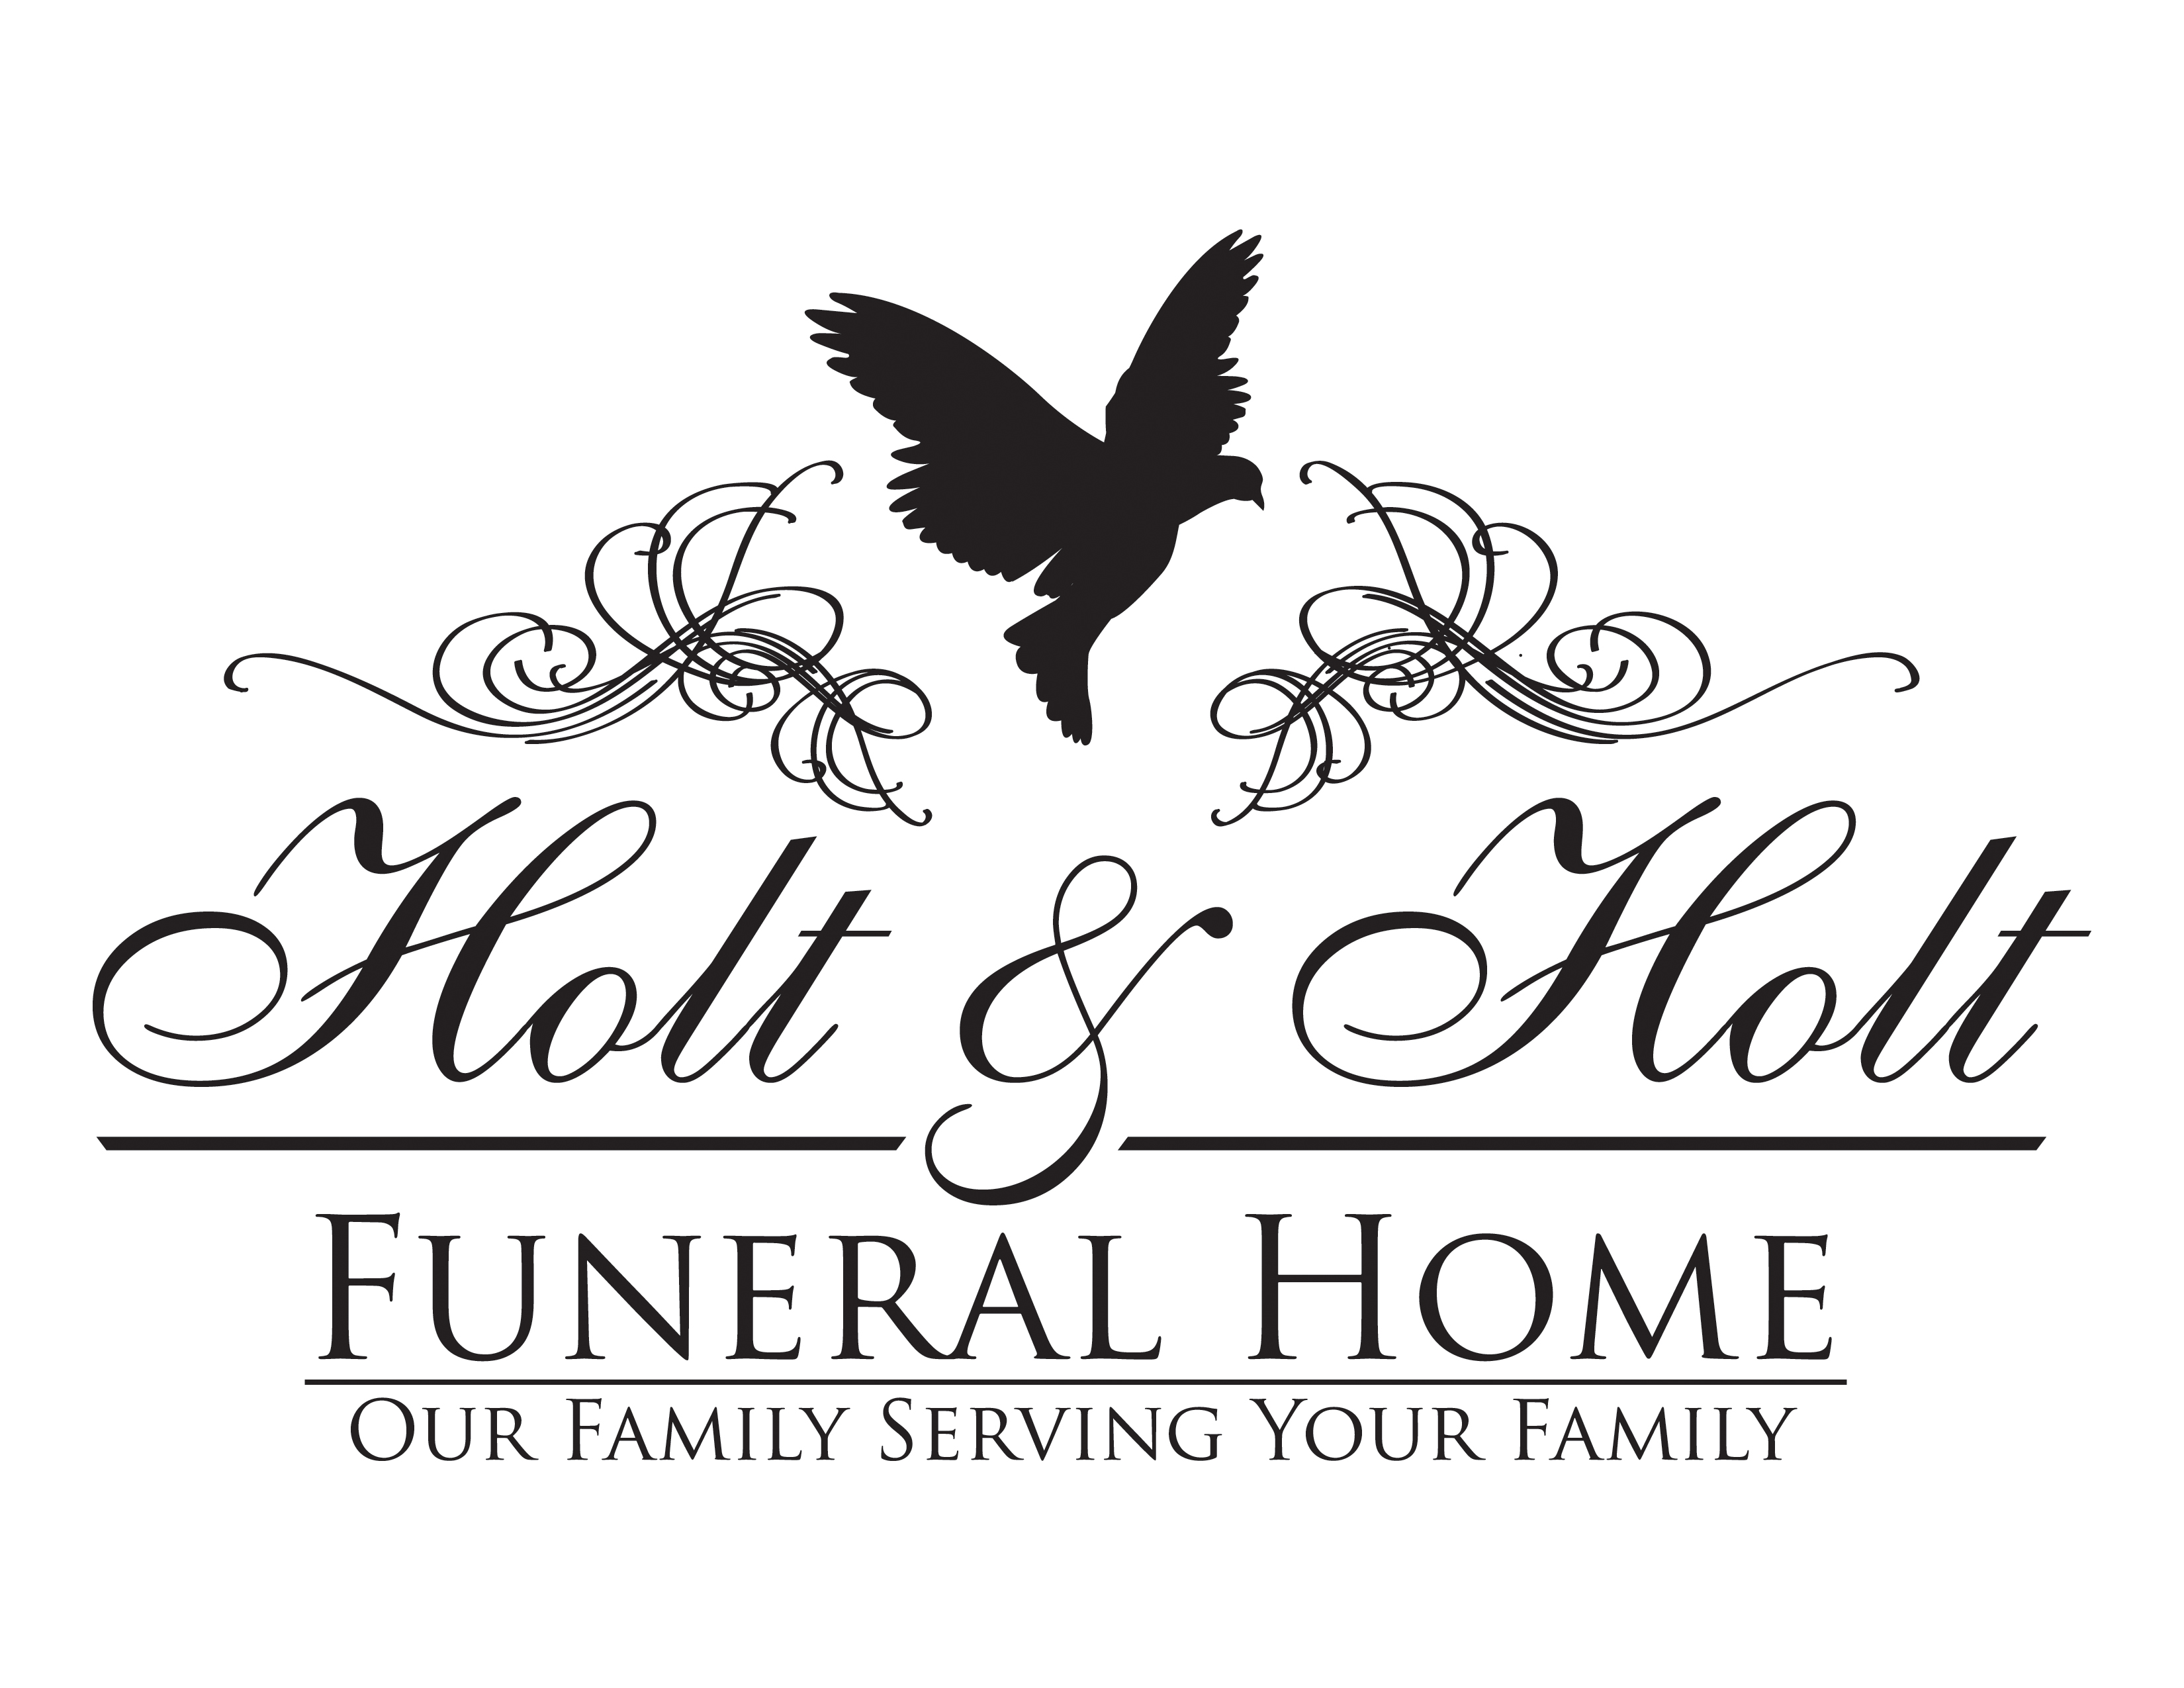 Holt & Holt Funeral Home of Boerne